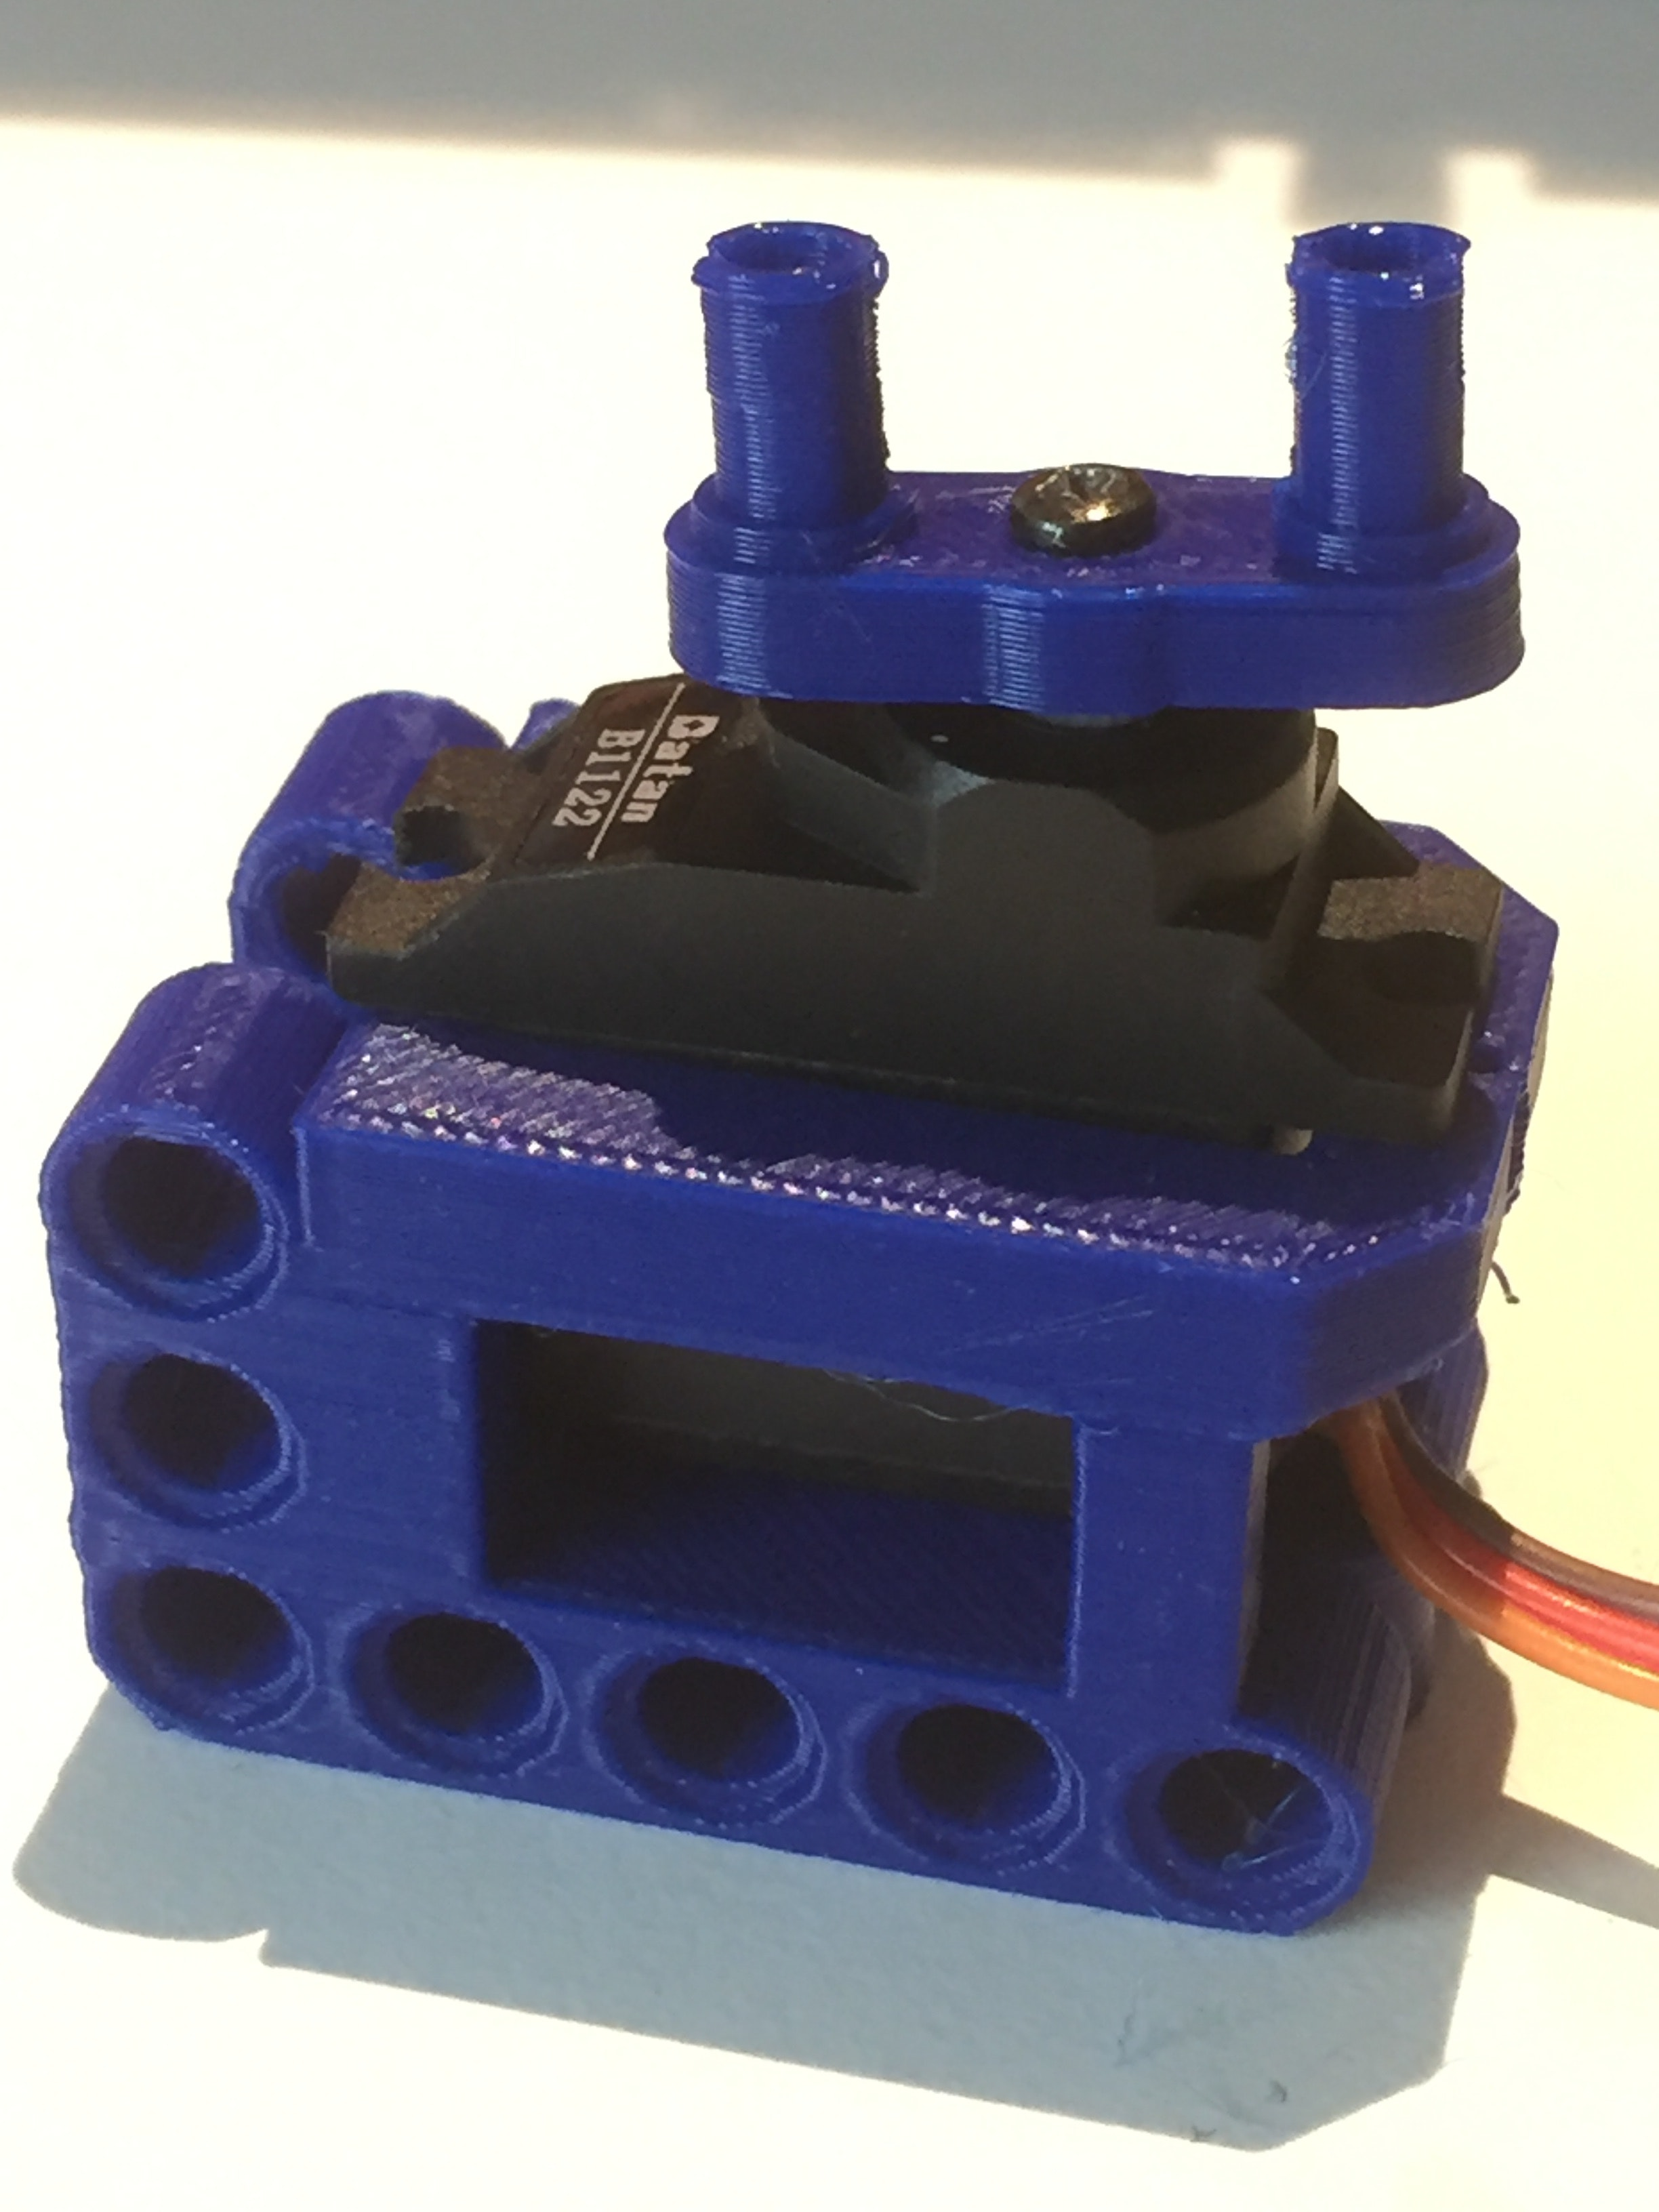 3D printed lego parts for mini-servo: a littleBits Project by dbddv01